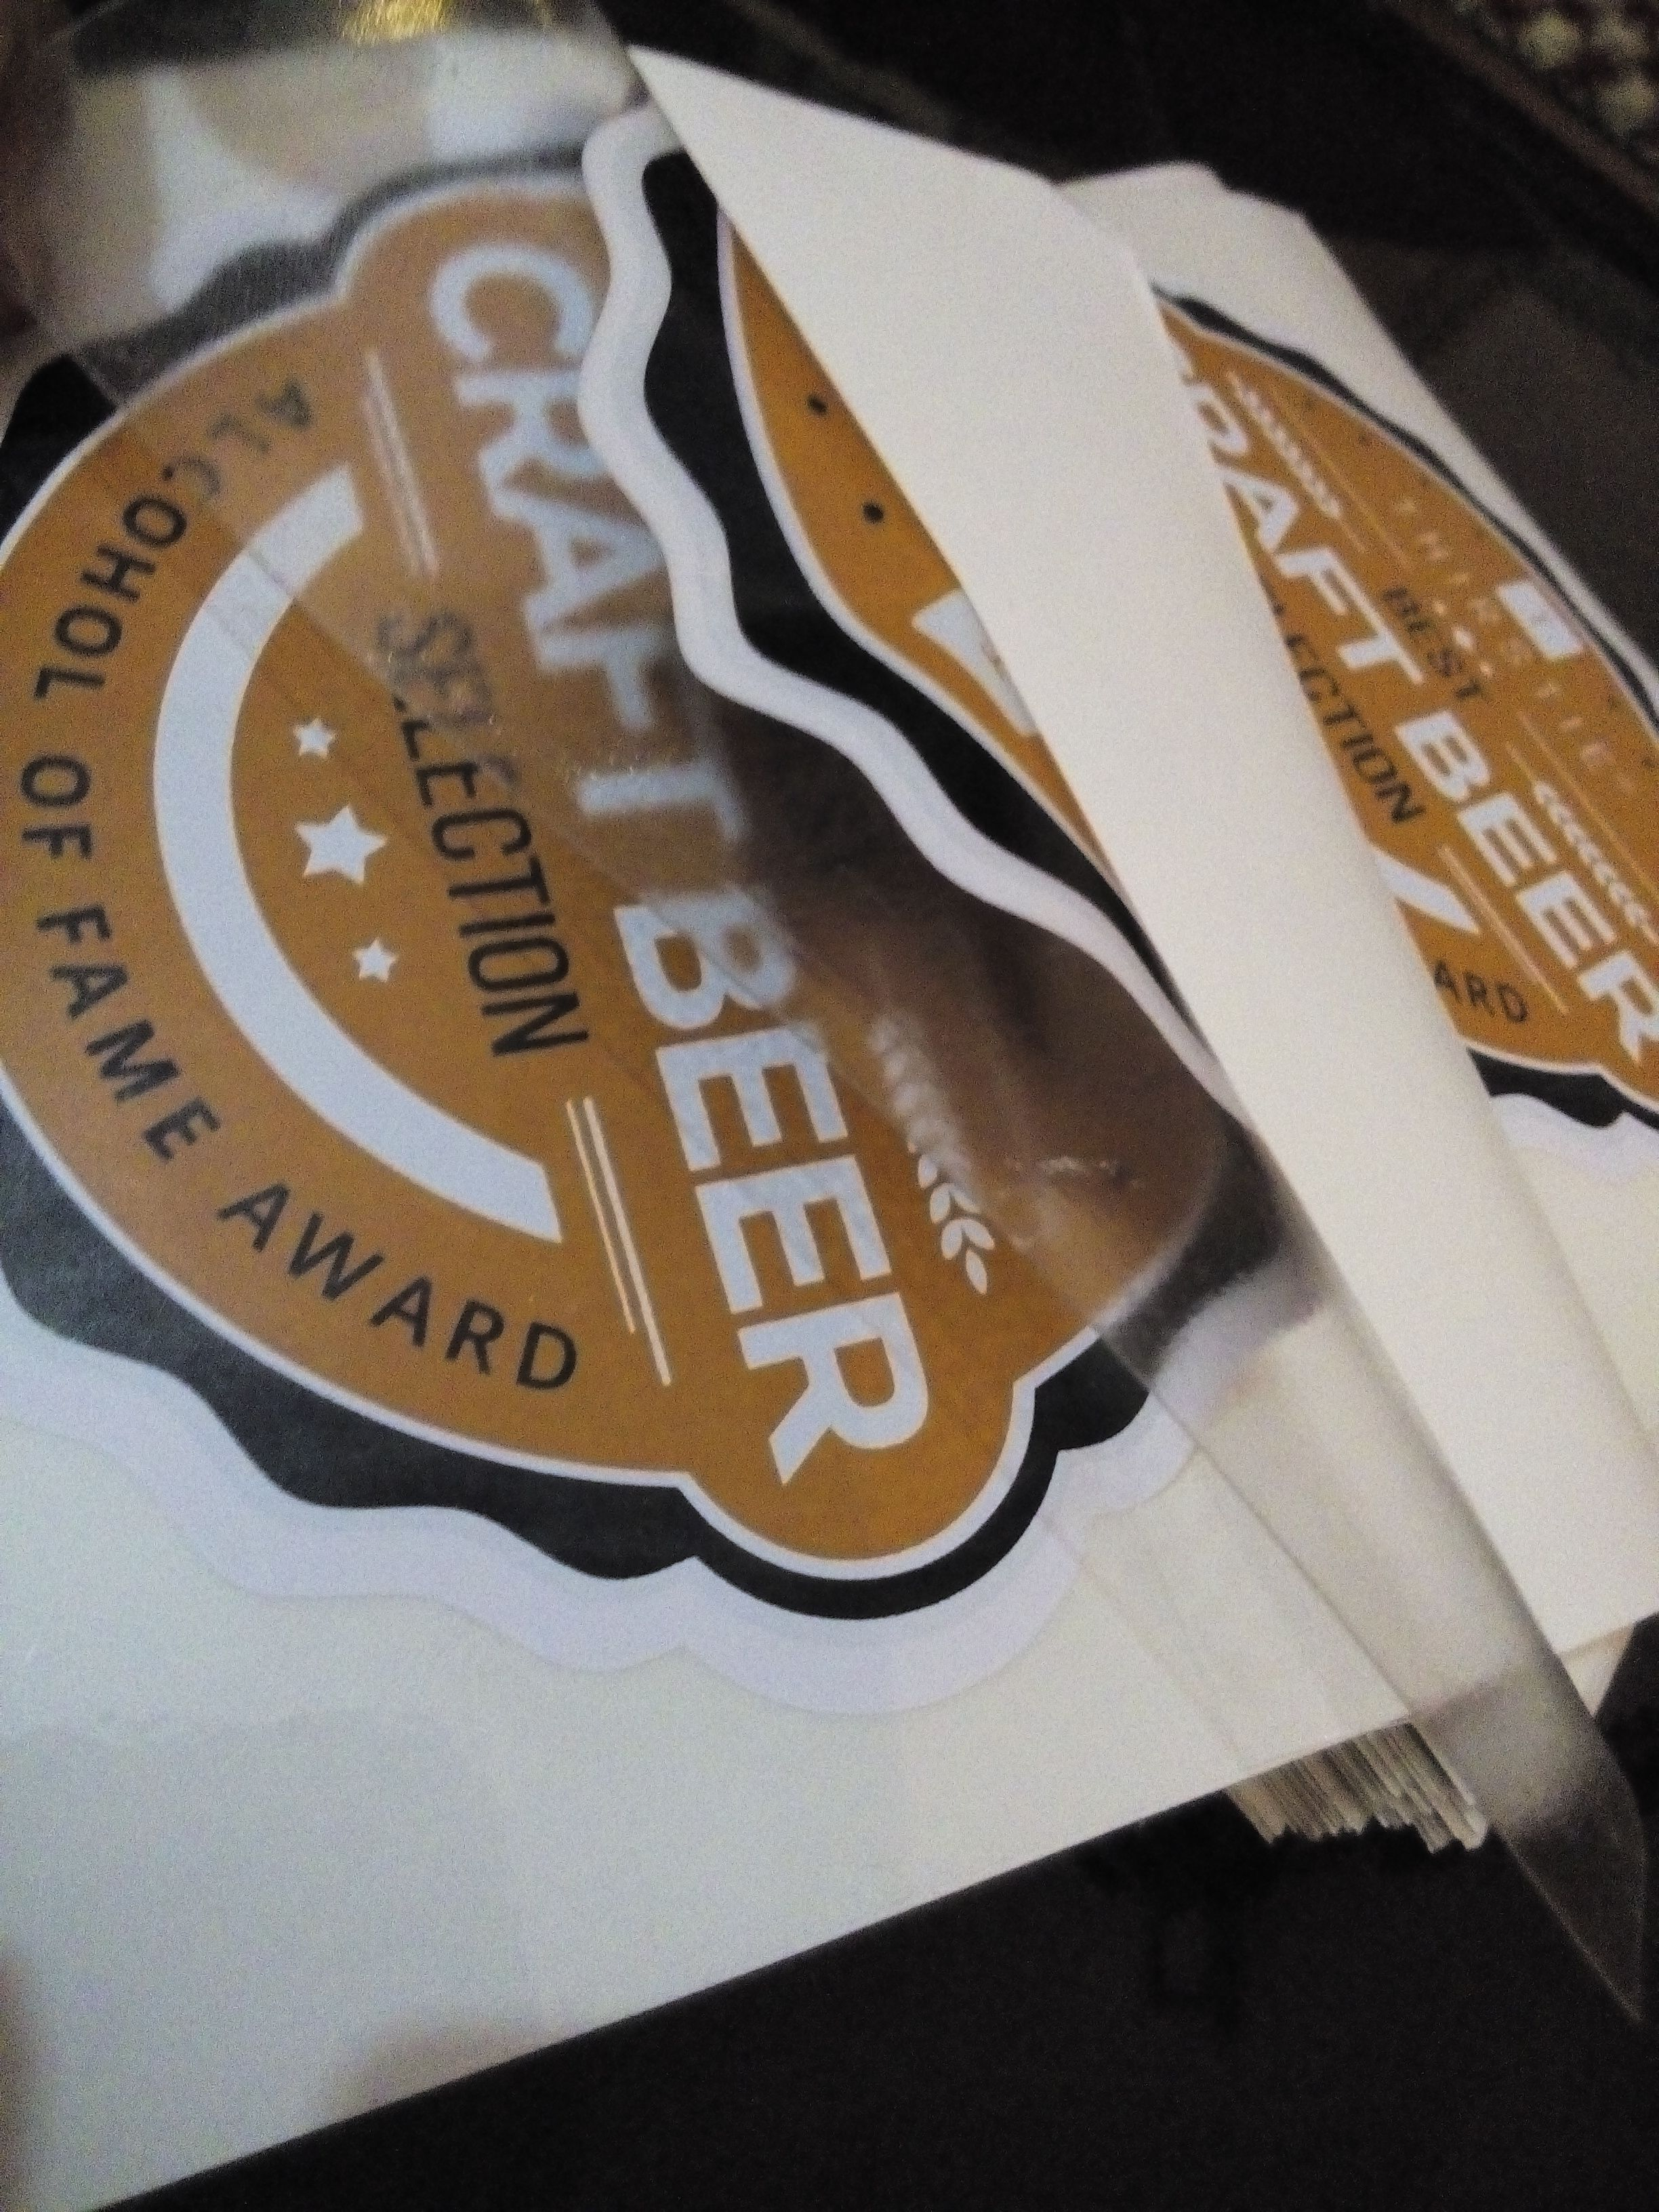 Beer Bottle Double Sided Stickers A Remarkable Promotional - Promotional products stickers and decals